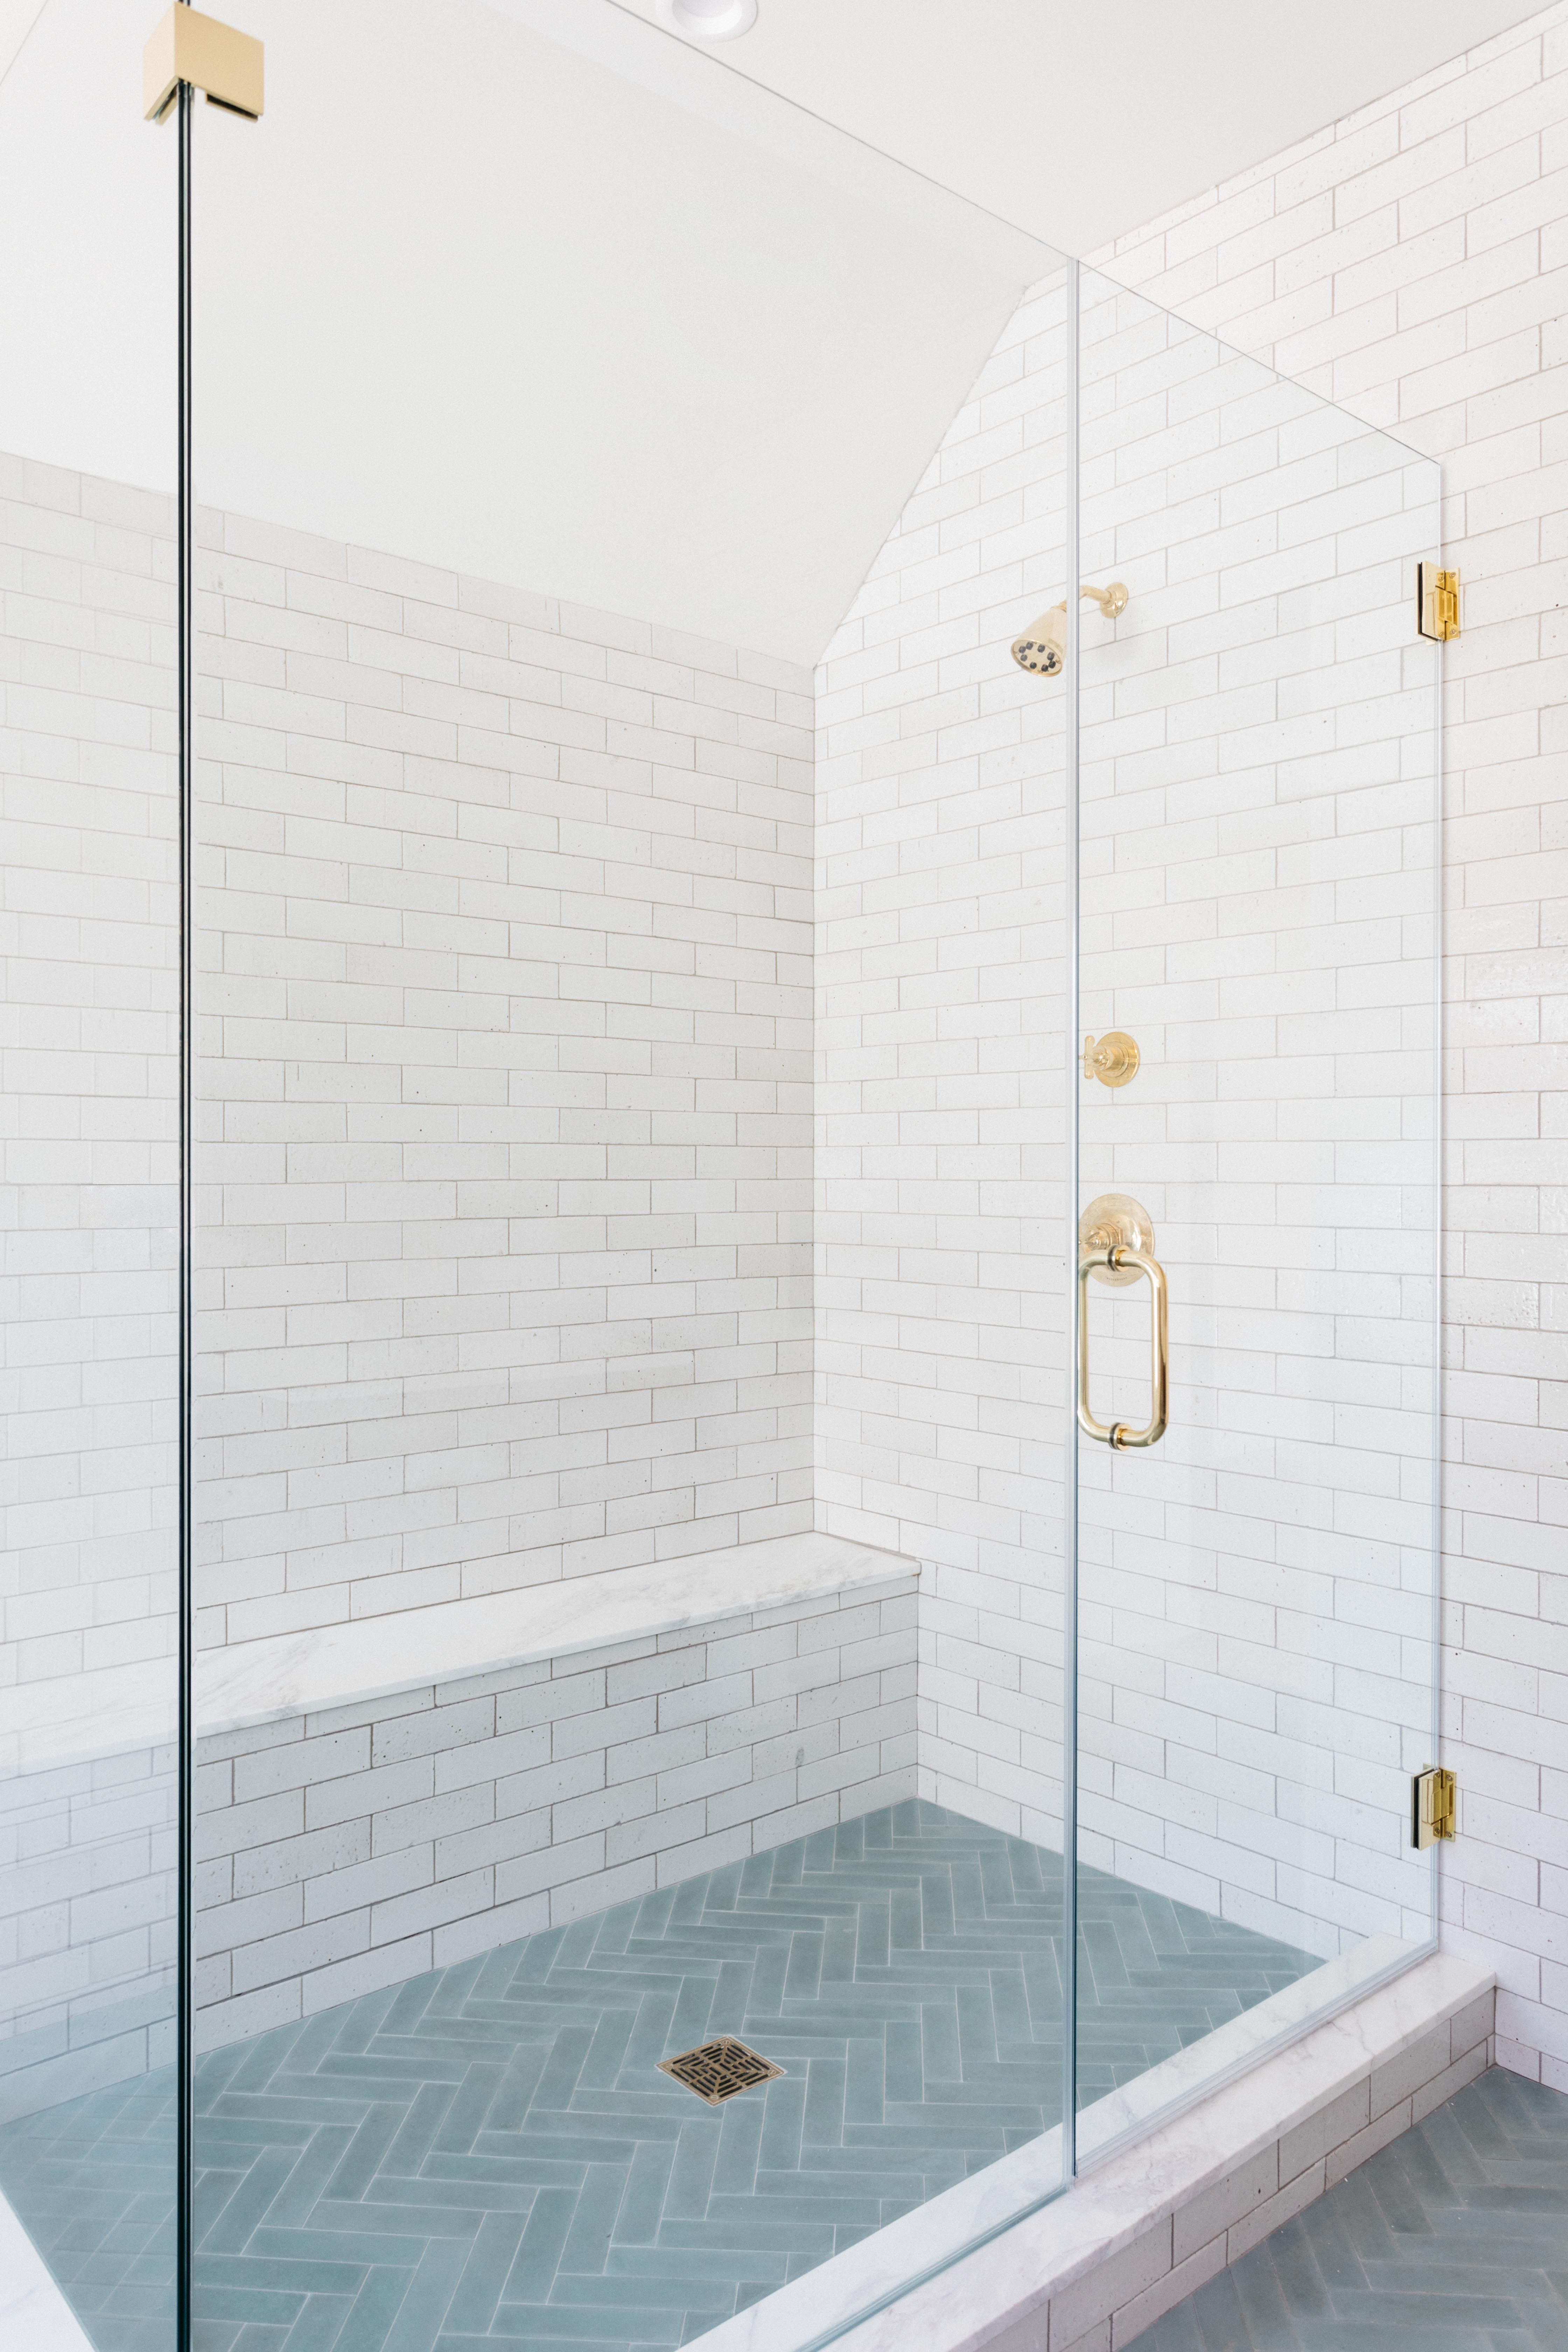 if your space requires a big dose of subway tile MAGIC- look no further than the chic, cool, wabi-sabi affect that can only be derived from solid cement tiles. #showernookdesign #showerdesign